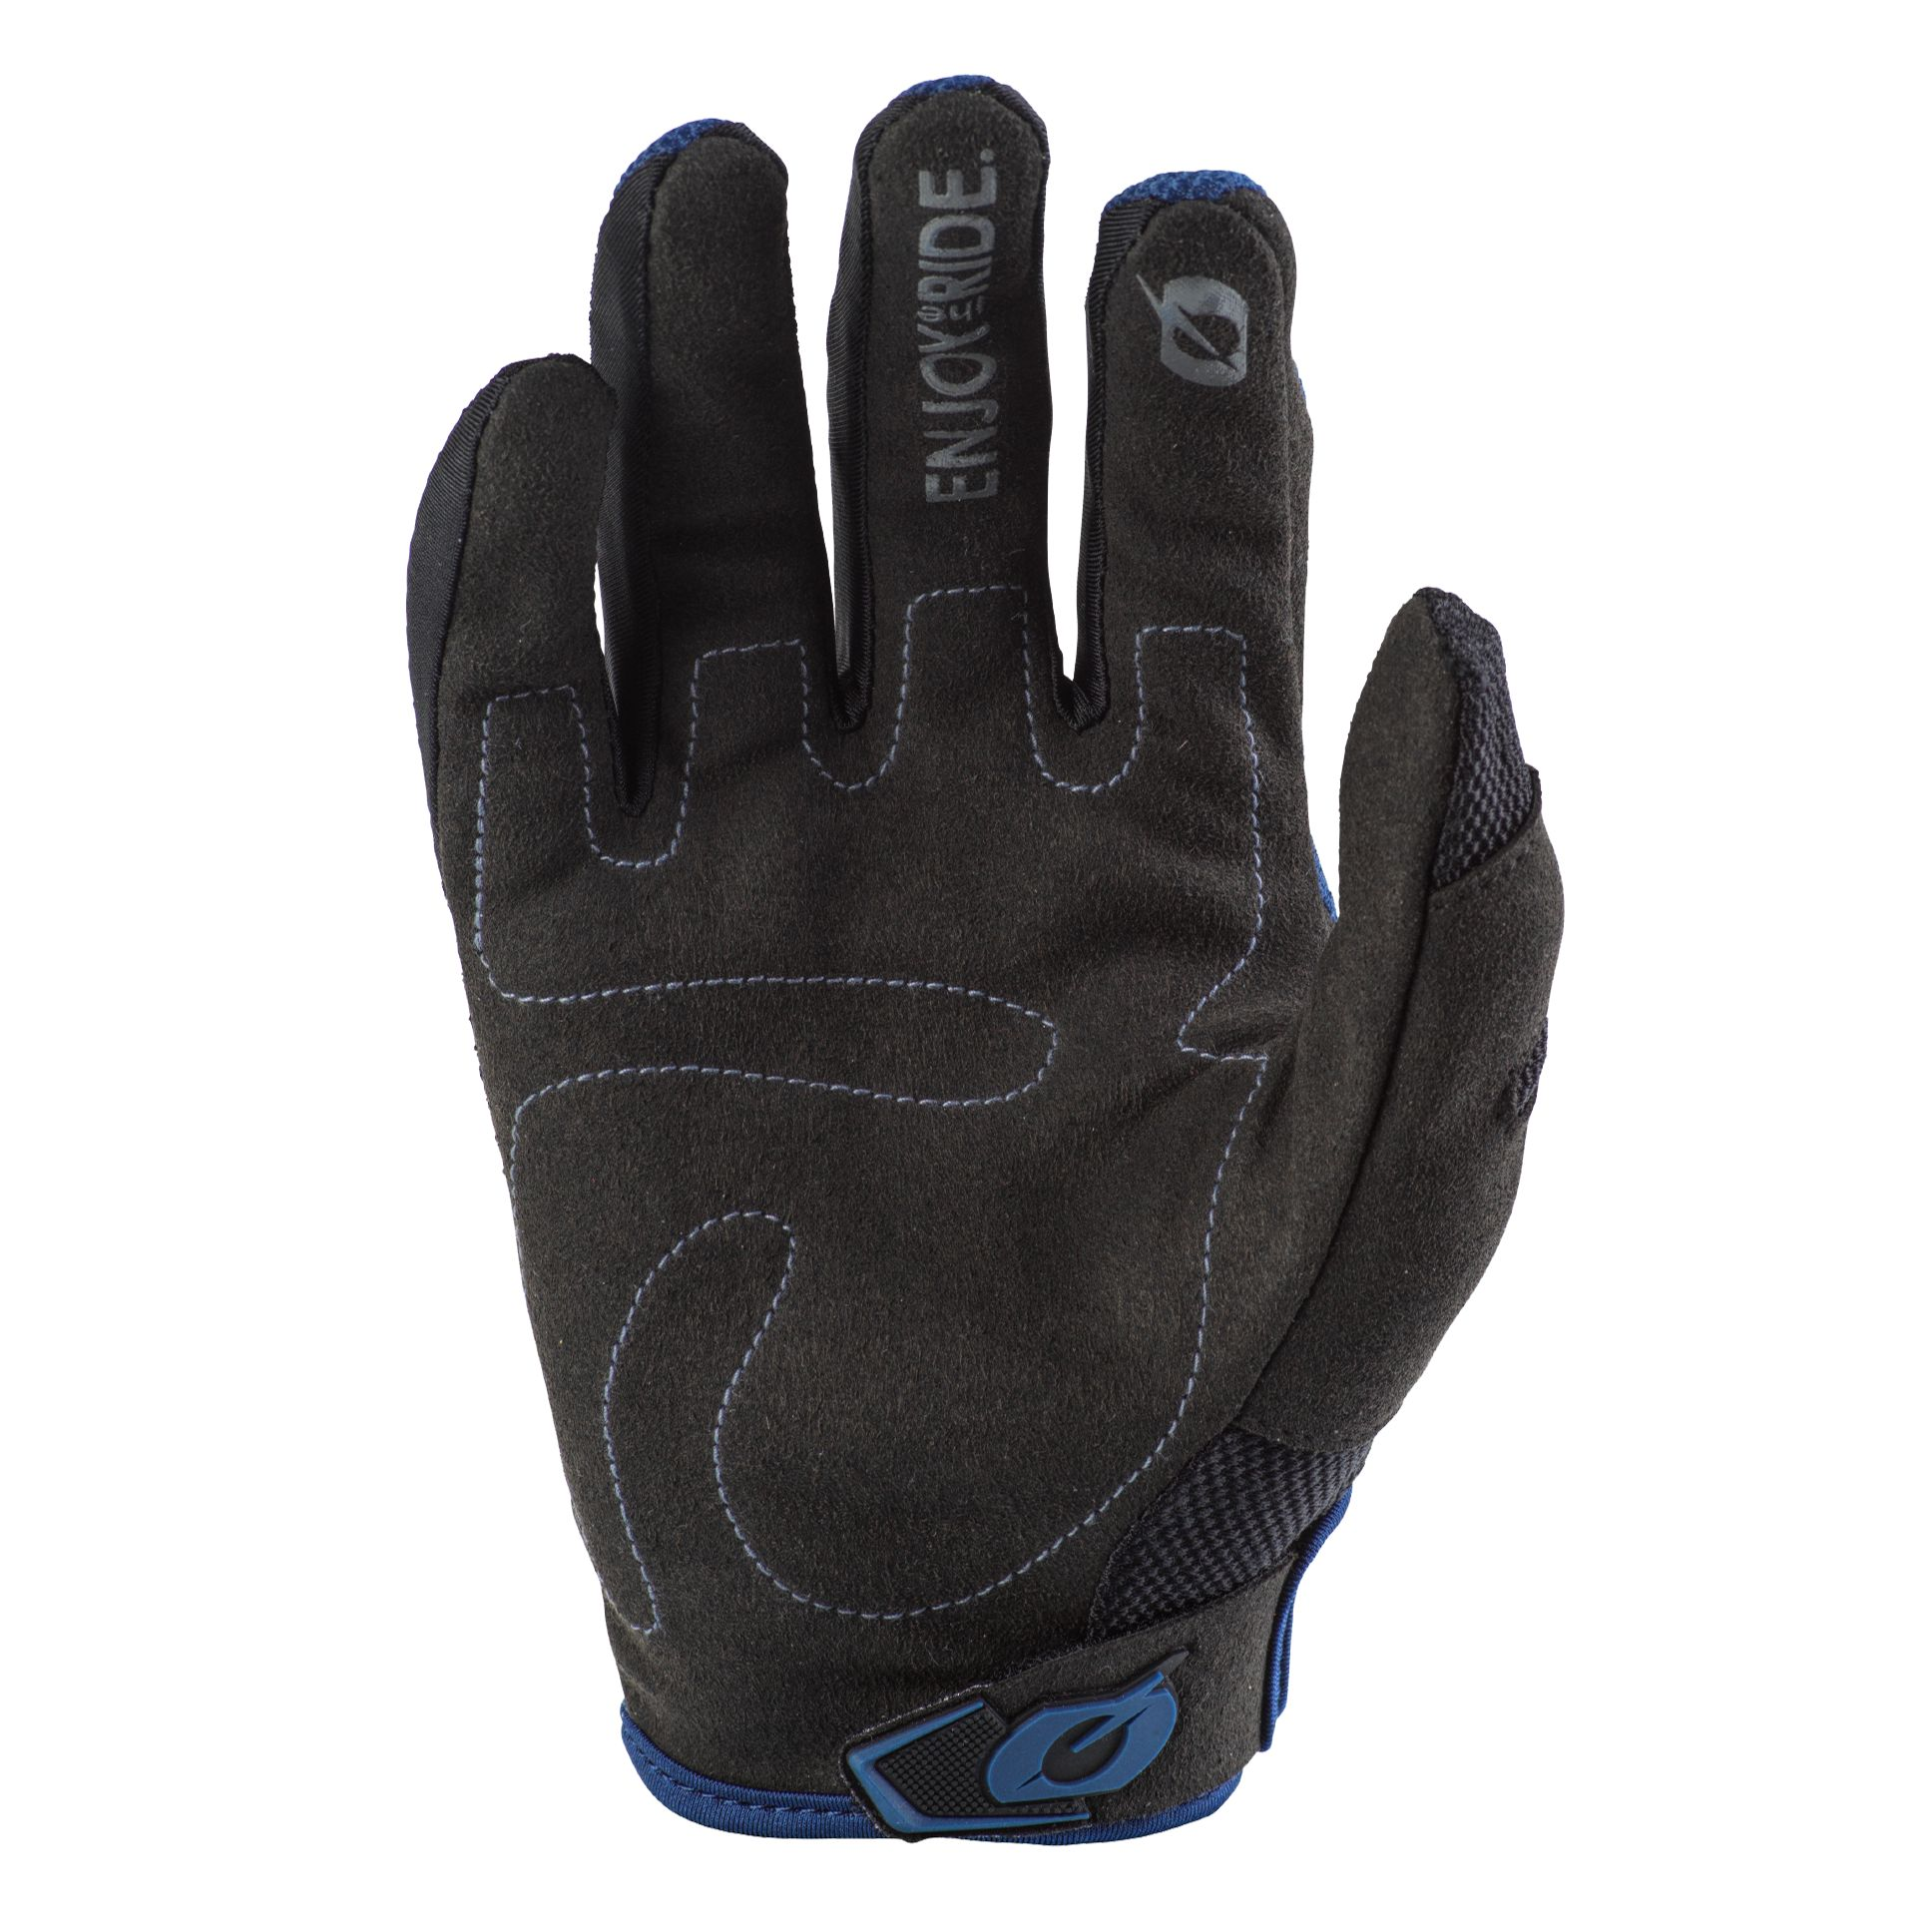 Guantes de motocross O'Neal ELEMENT - BLUE 2020